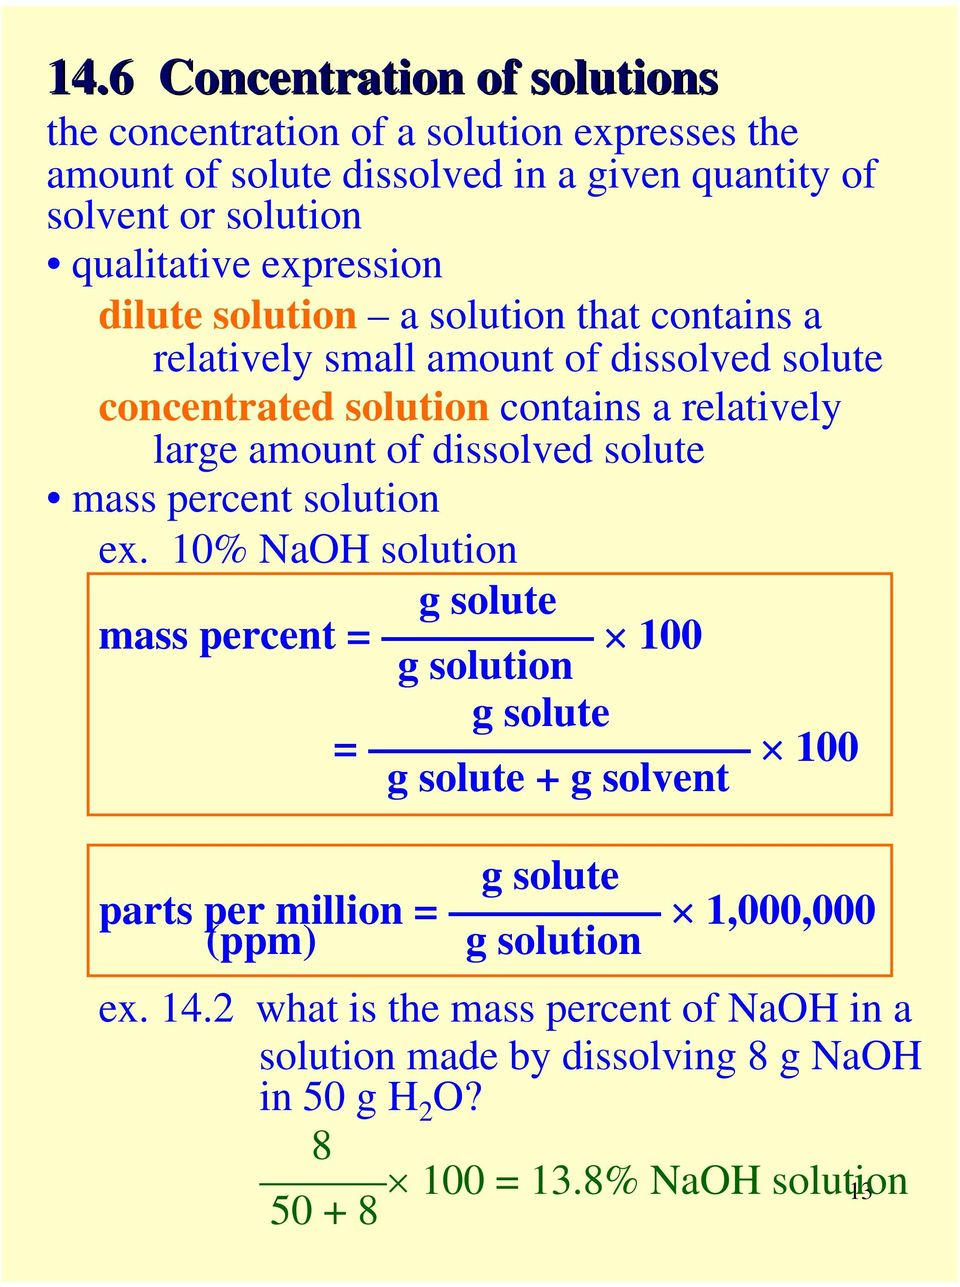 dissolved solute mass percent solution ex.